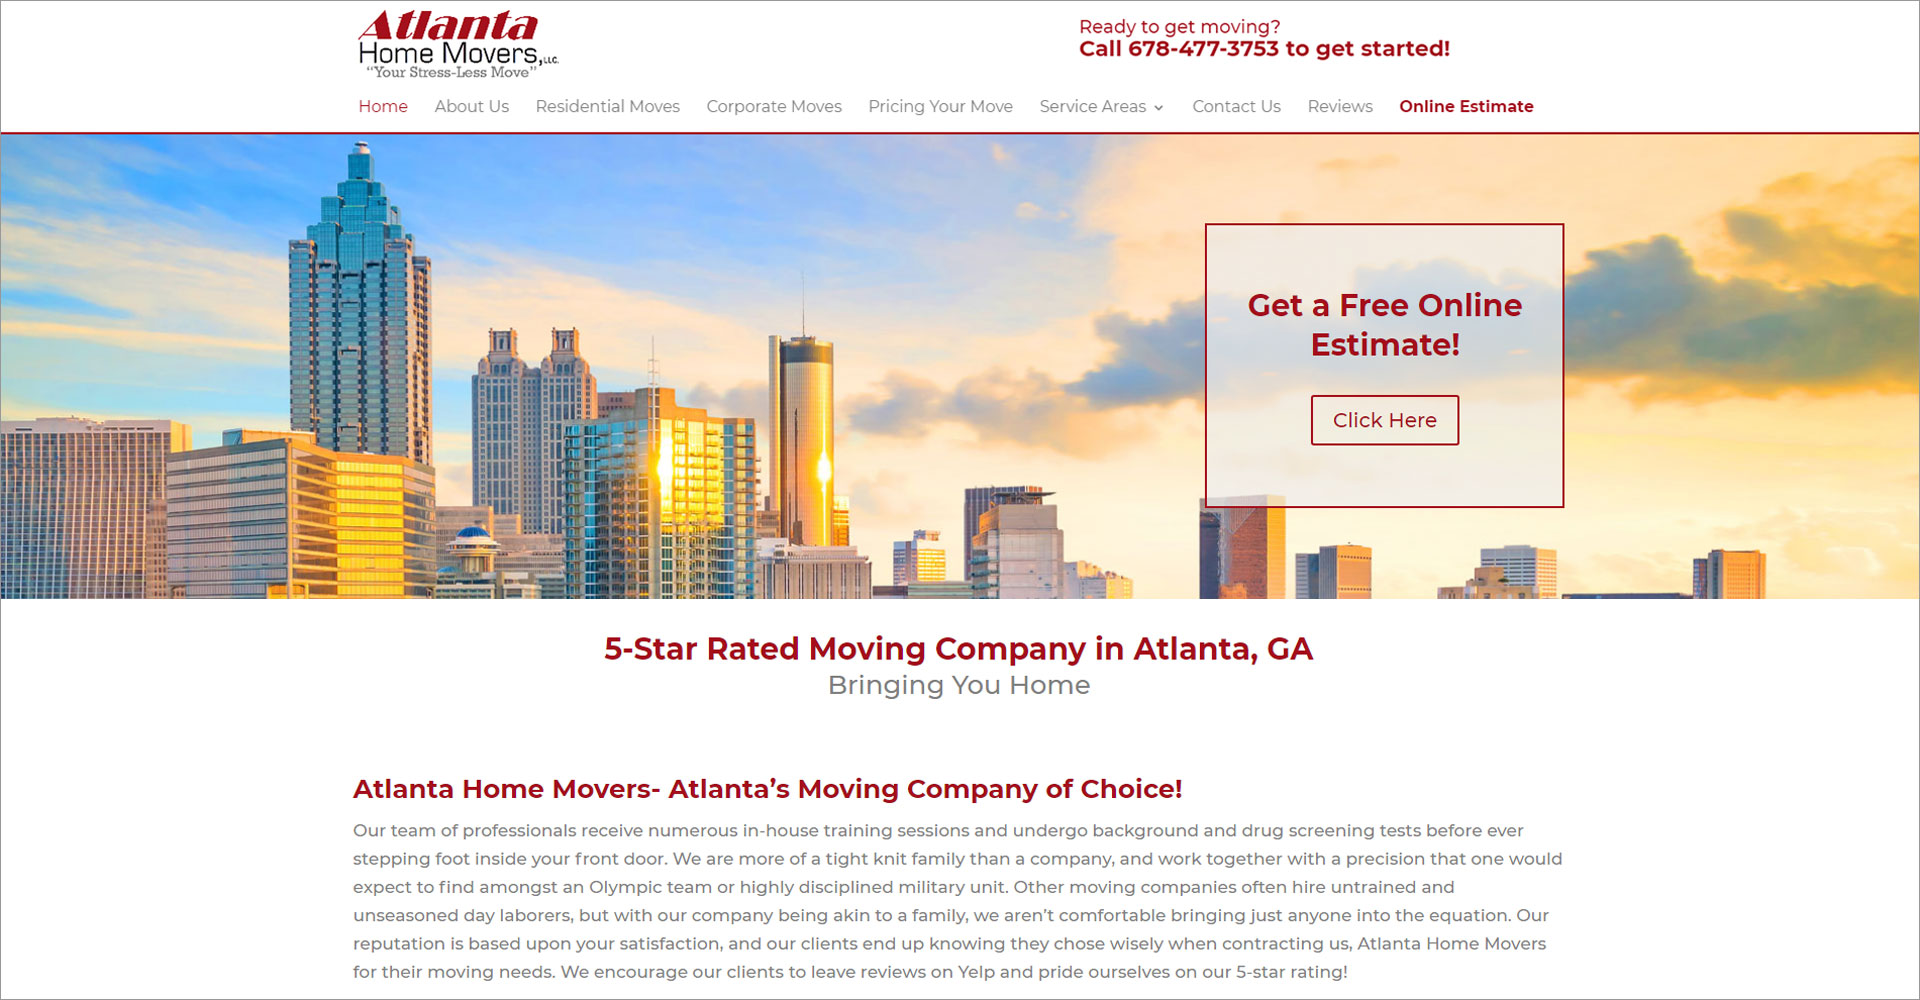 Atlanta Home Movers - Zoda Design